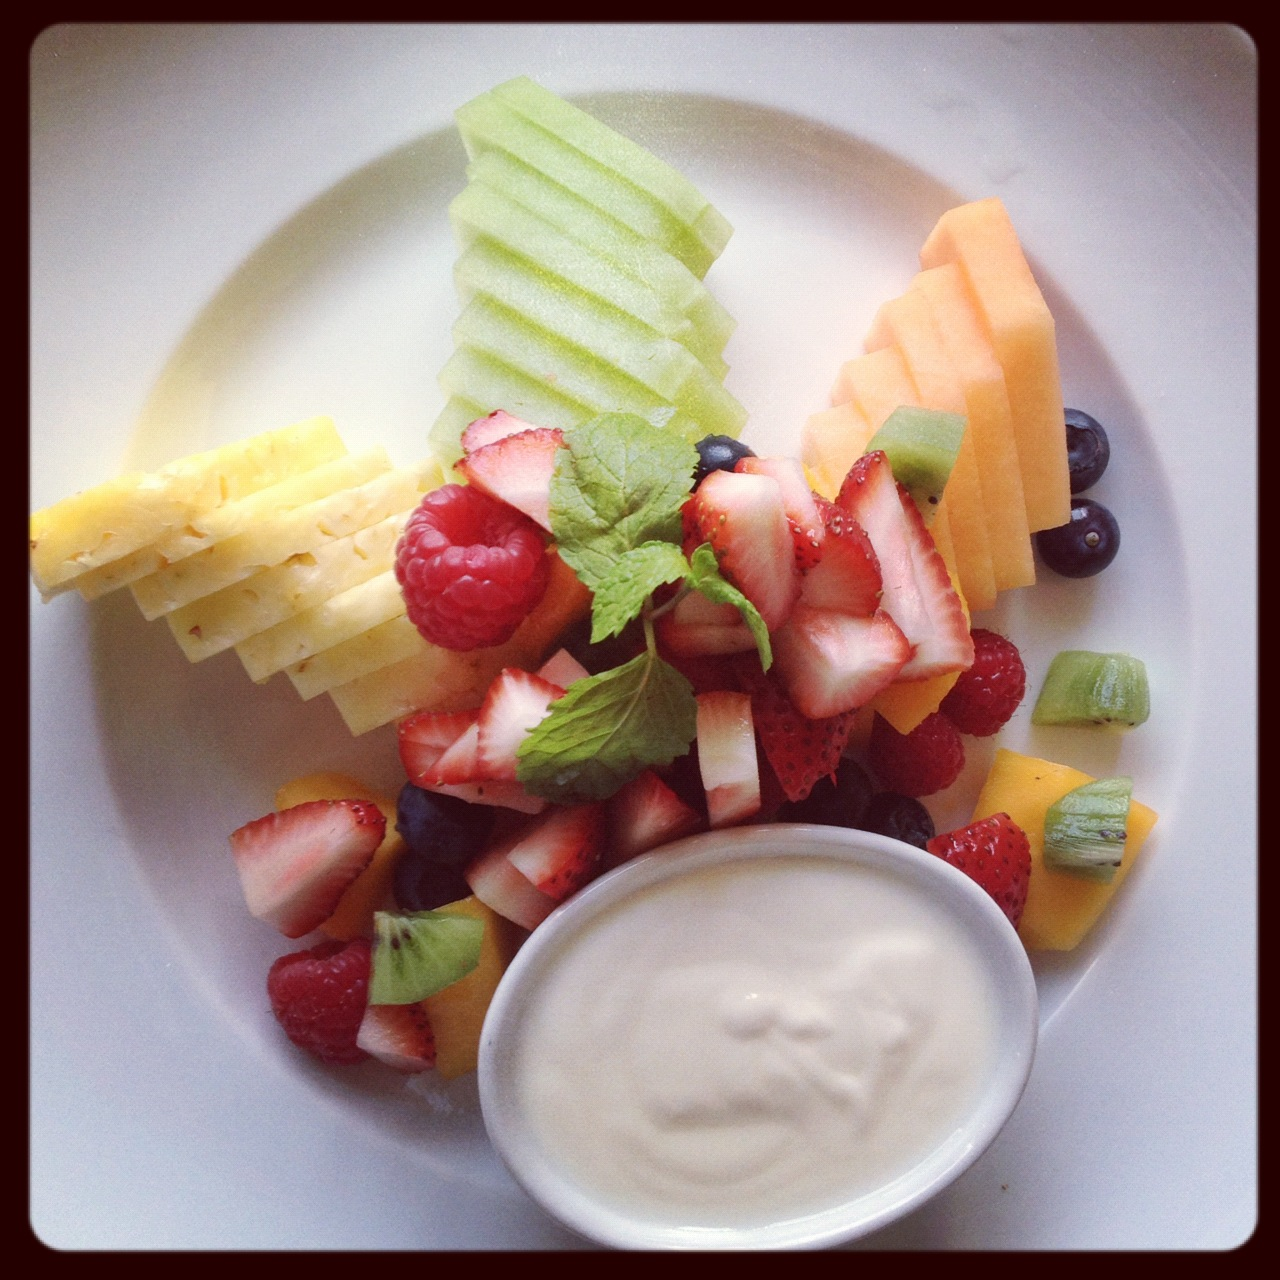 Download this Healthy Breakfast picture